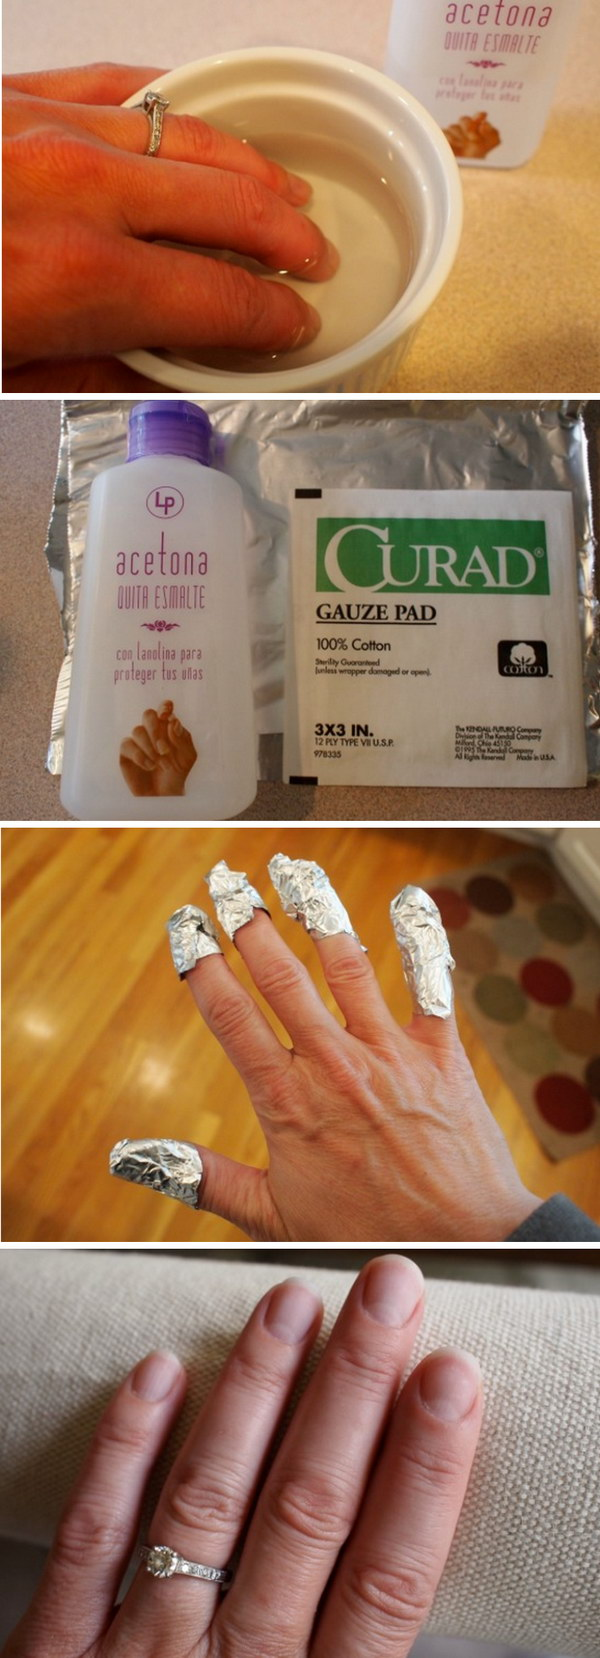 17 Awesome Nail Hacks You Should Know